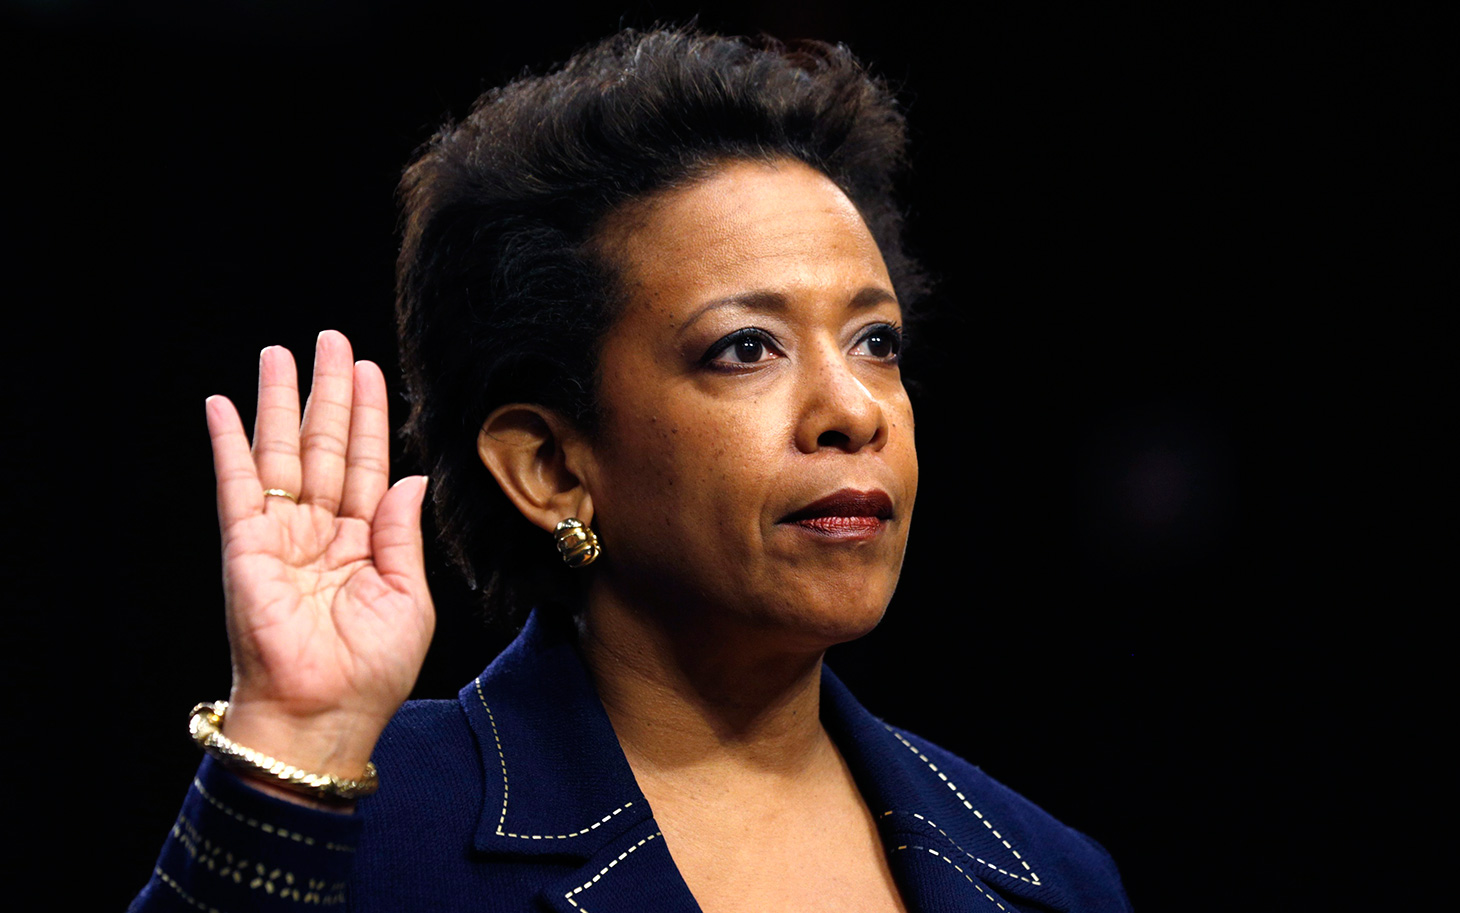 Loretta Lynch is sworn in to testify before a Senate Judiciary Committee confirmation hearing on her nomination to be U.S. attorney general on Capitol Hill in Washington January 28, 2015. Lynch, nominated in November, has stirred little controversy in her 16 years with the U.S. Attorney's office in Brooklyn and is expected to win confirmation.    REUTERS/Kevin Lamarque  (UNITED STATES - Tags: POLITICS CRIME LAW)